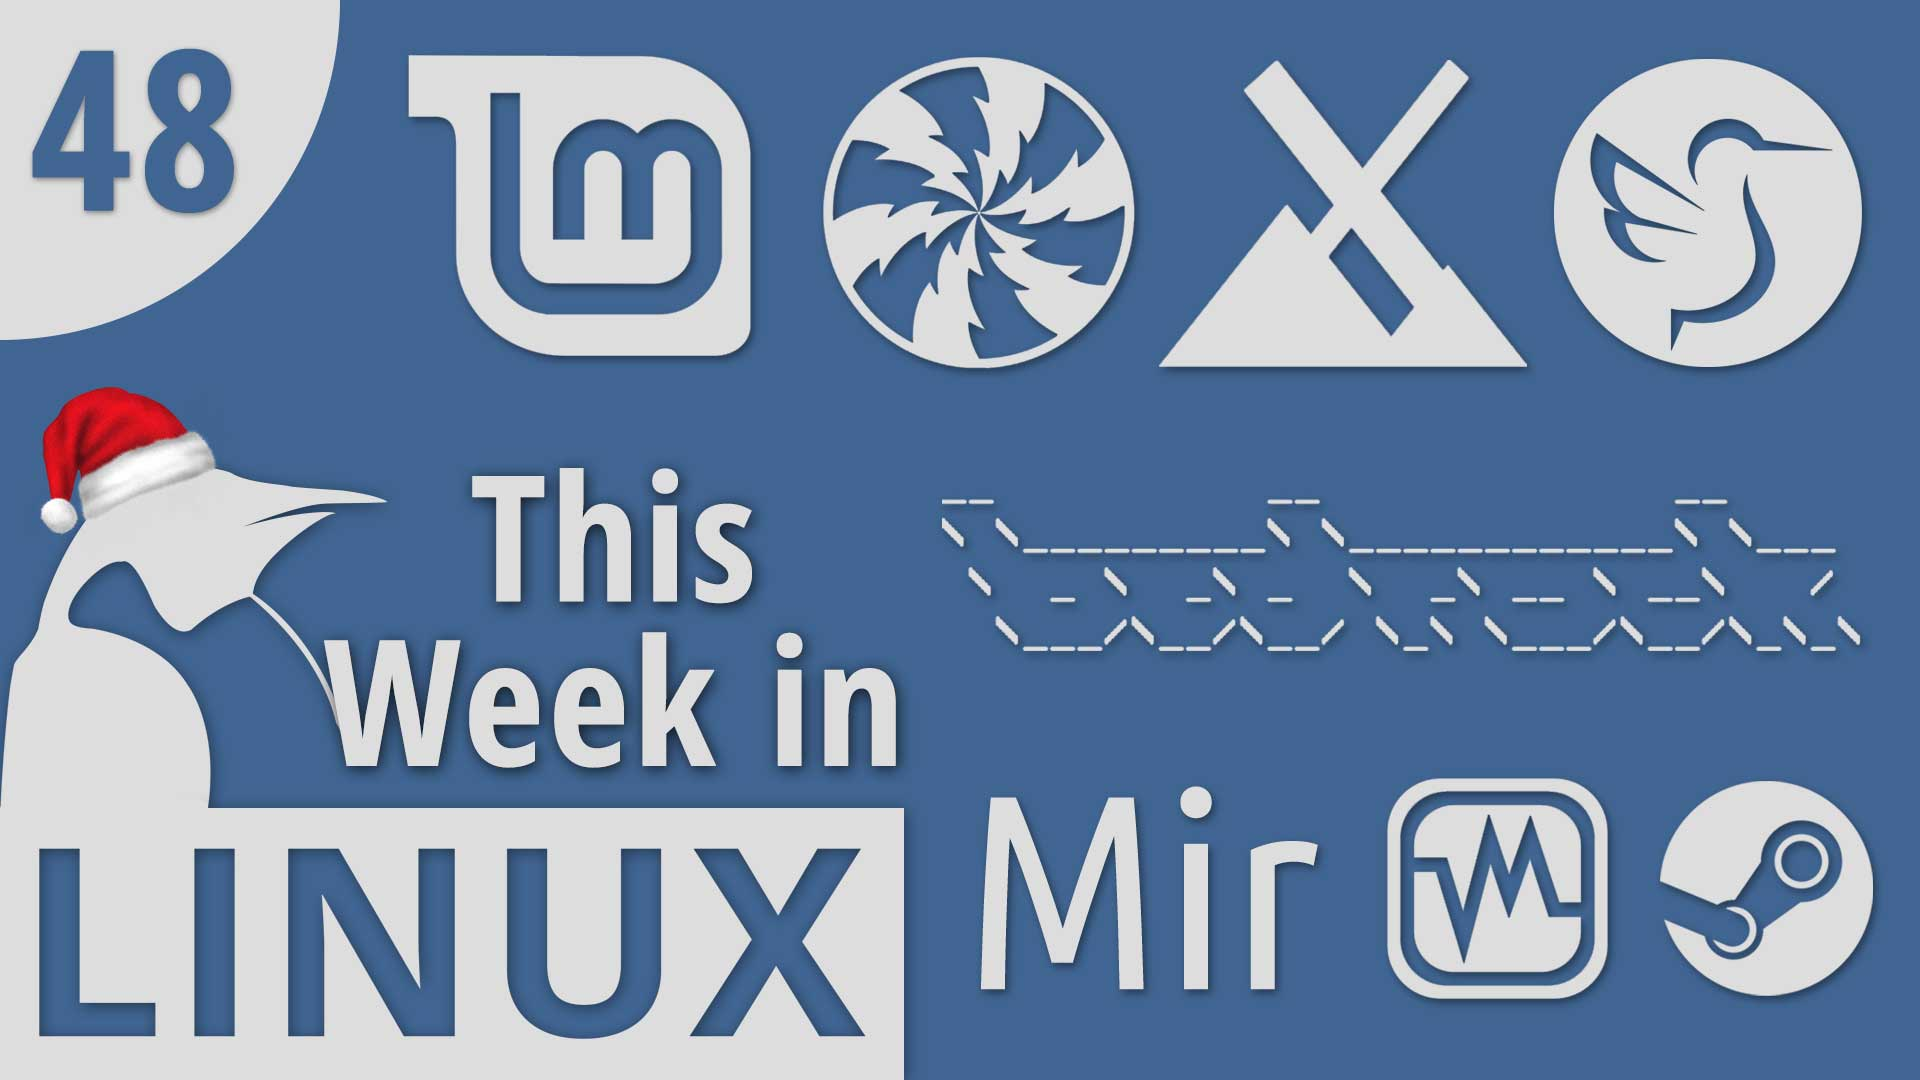 Episode 48 | This Week in Linux – TuxDigital